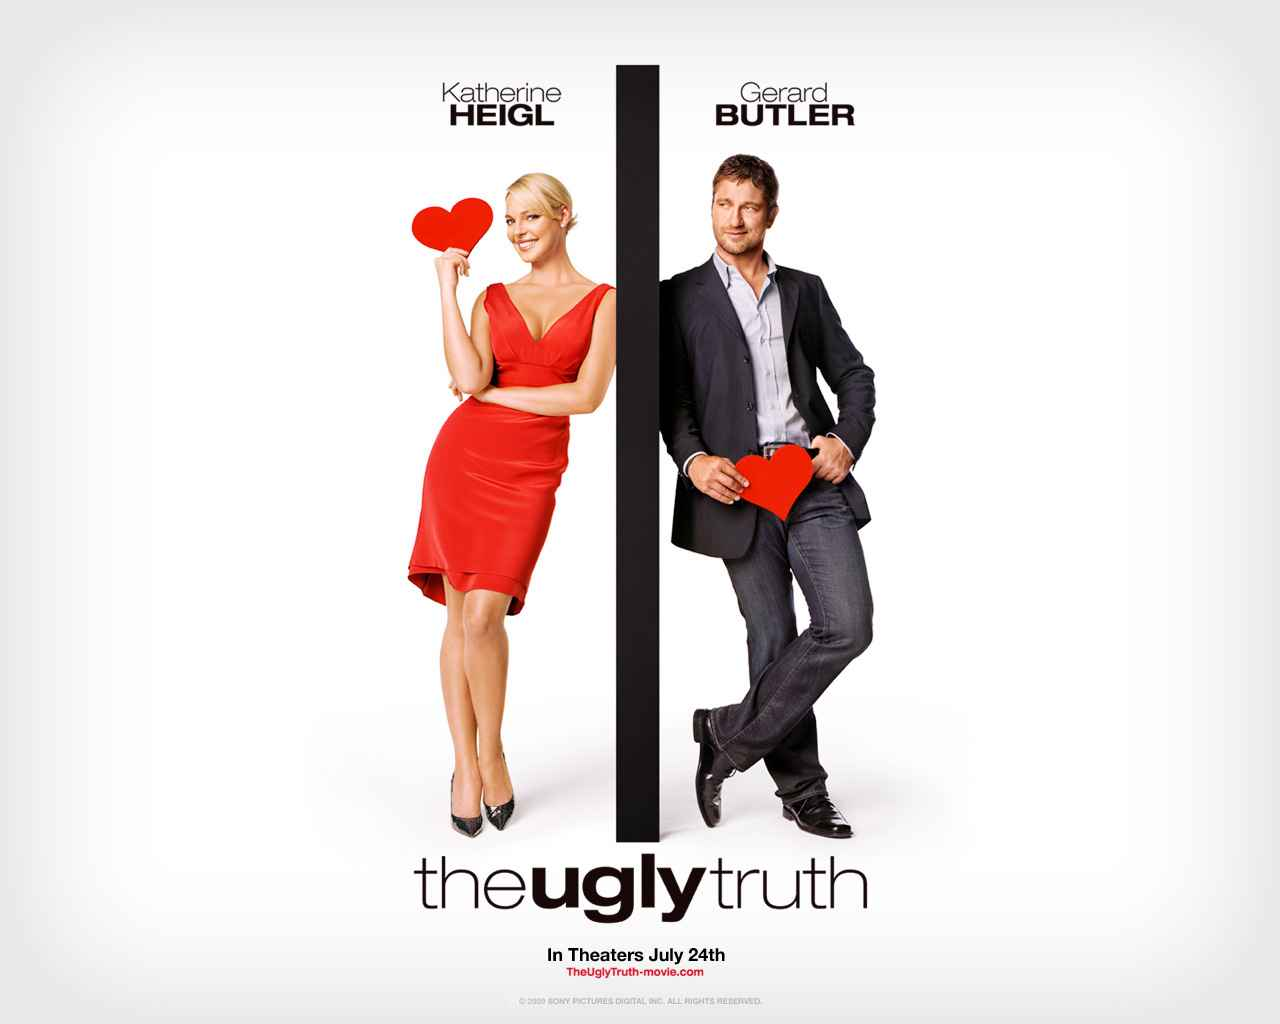 http://4.bp.blogspot.com/-dqZs7lYARZo/T5_YBFHJCSI/AAAAAAAAApc/9CAjMLTYIlY/s1600/Katherine_Heigl_in_The_Ugly_Truth_Wallpaper_3_1280.jpg